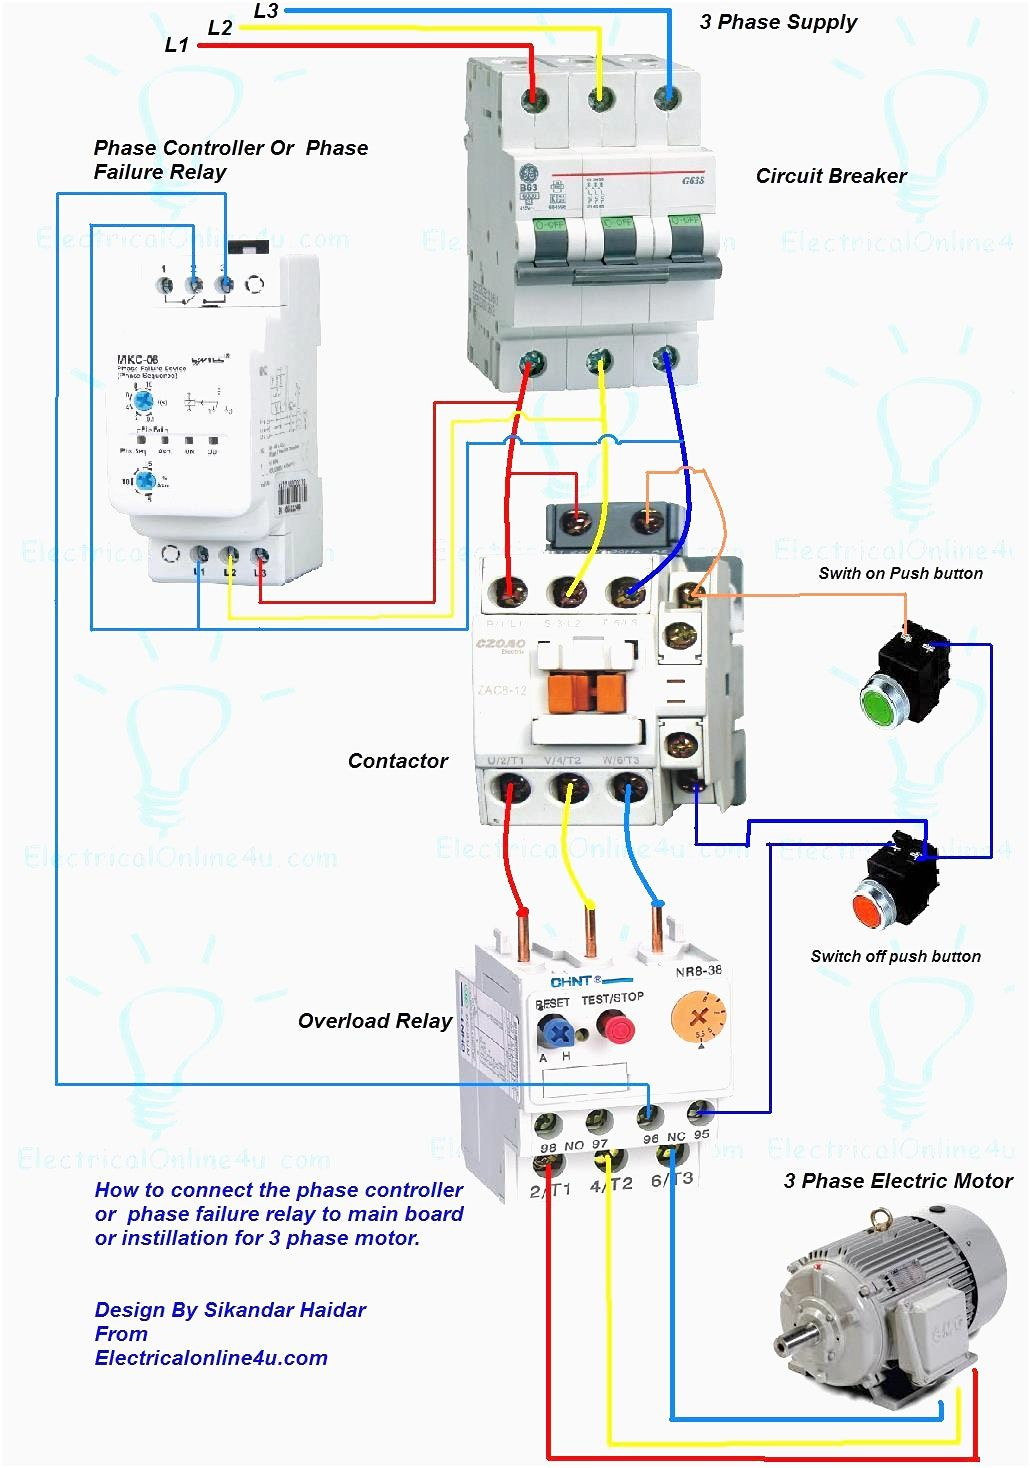 wiring diagram for motor starter 3 phase controller failure relay rh pinterest com 6 Wire 3 Phase Motor Wiring 6 Wire 3 Phase Motor Wiring